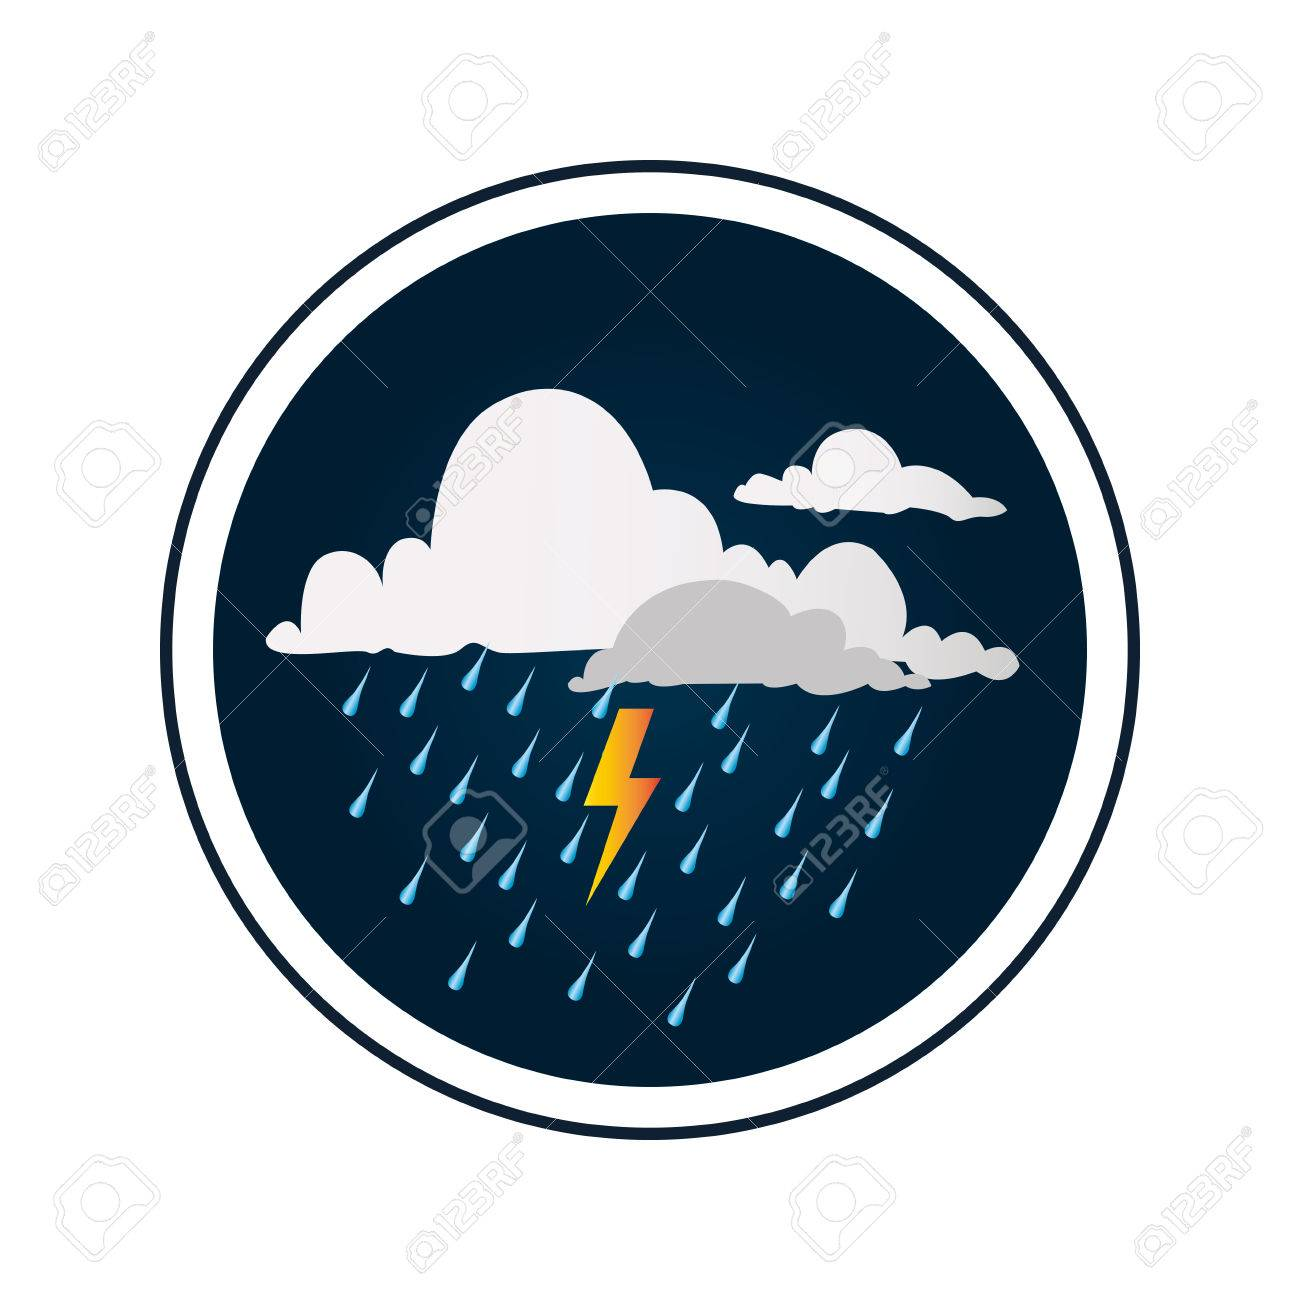 circular border with background with clouds with rain and thunder royalty free cliparts vectors and stock illustration image 71637323 circular border with background with clouds with rain and thunder